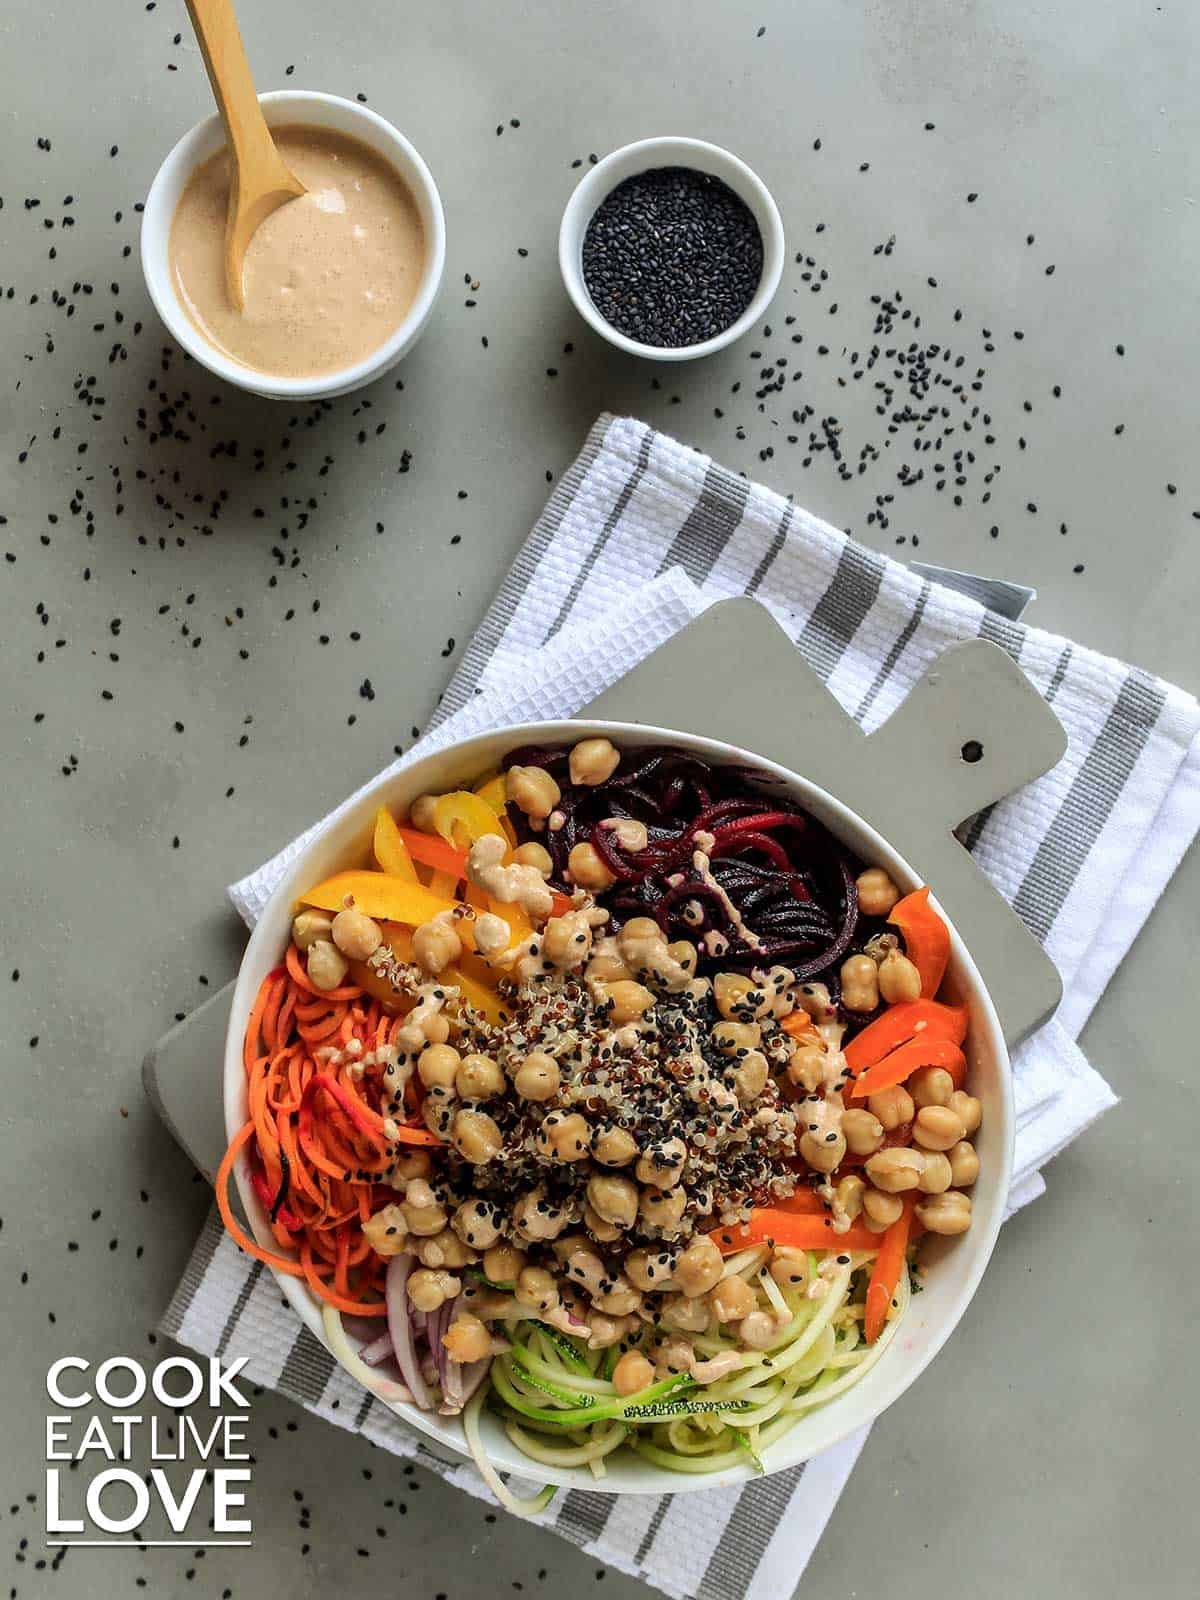 Spiralized veggies in a white bowl with dressing and sesame seeds on the side